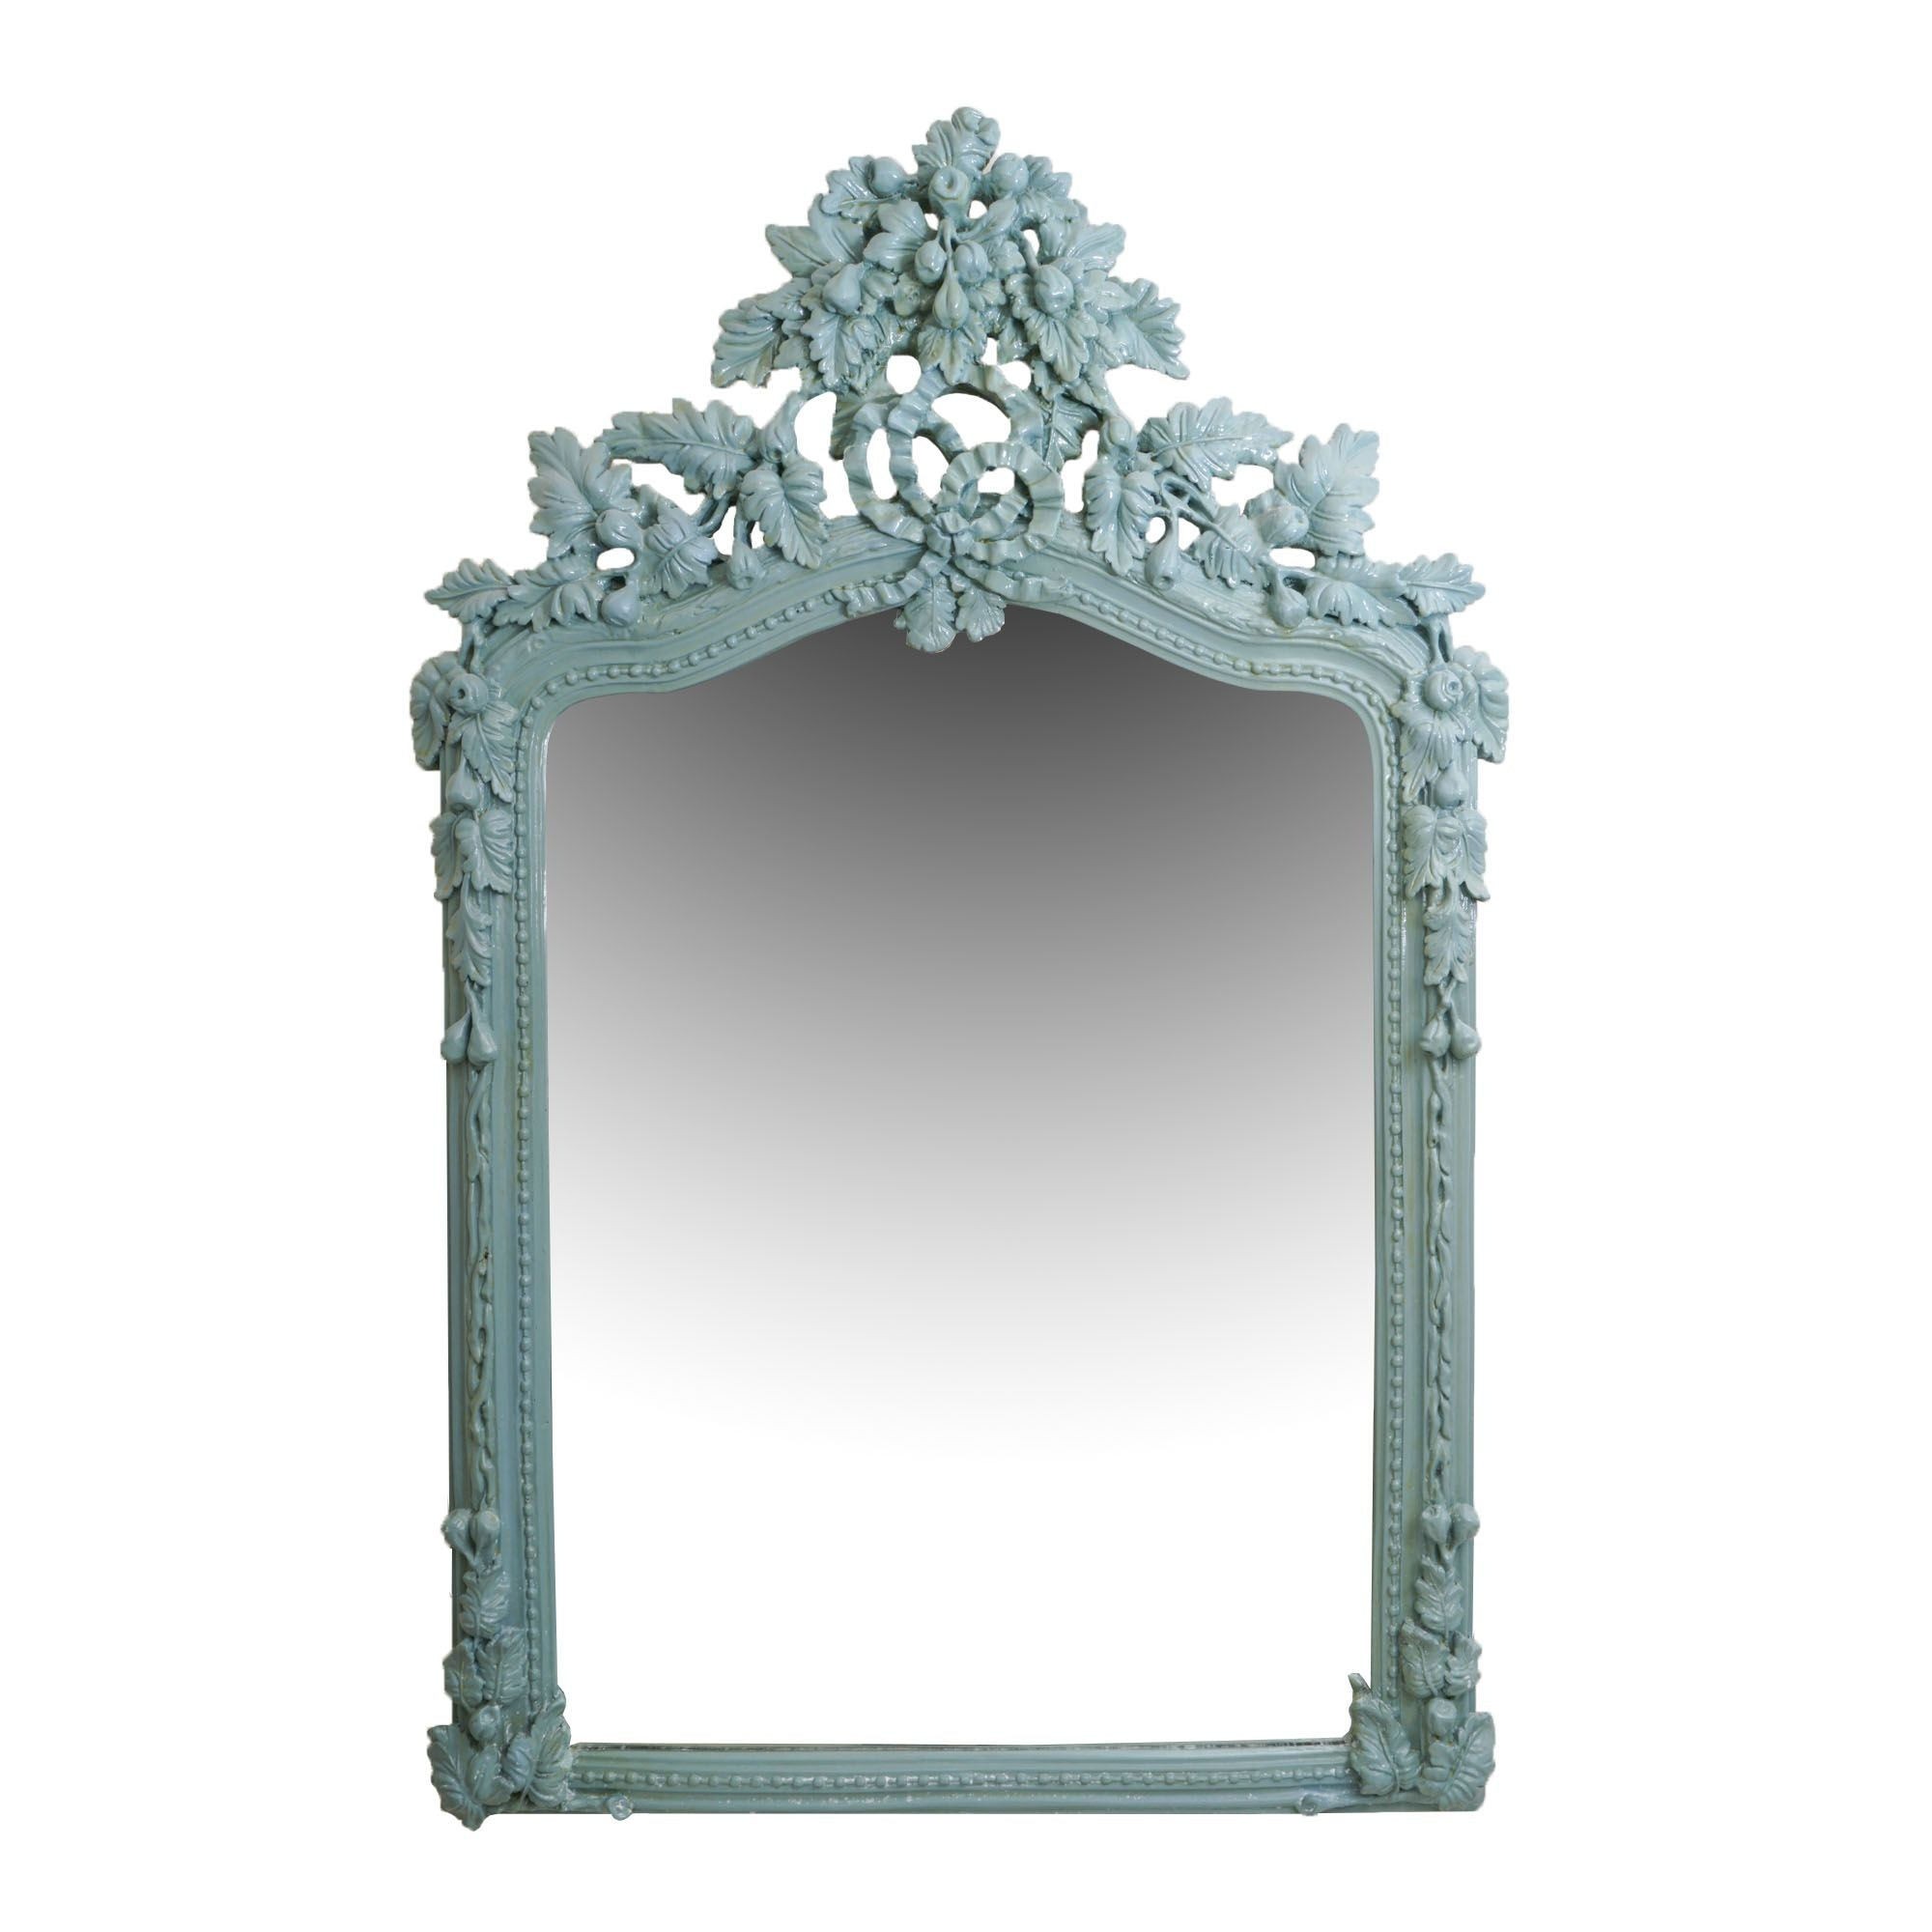 Louis XVI Style Painted Wall Mirror